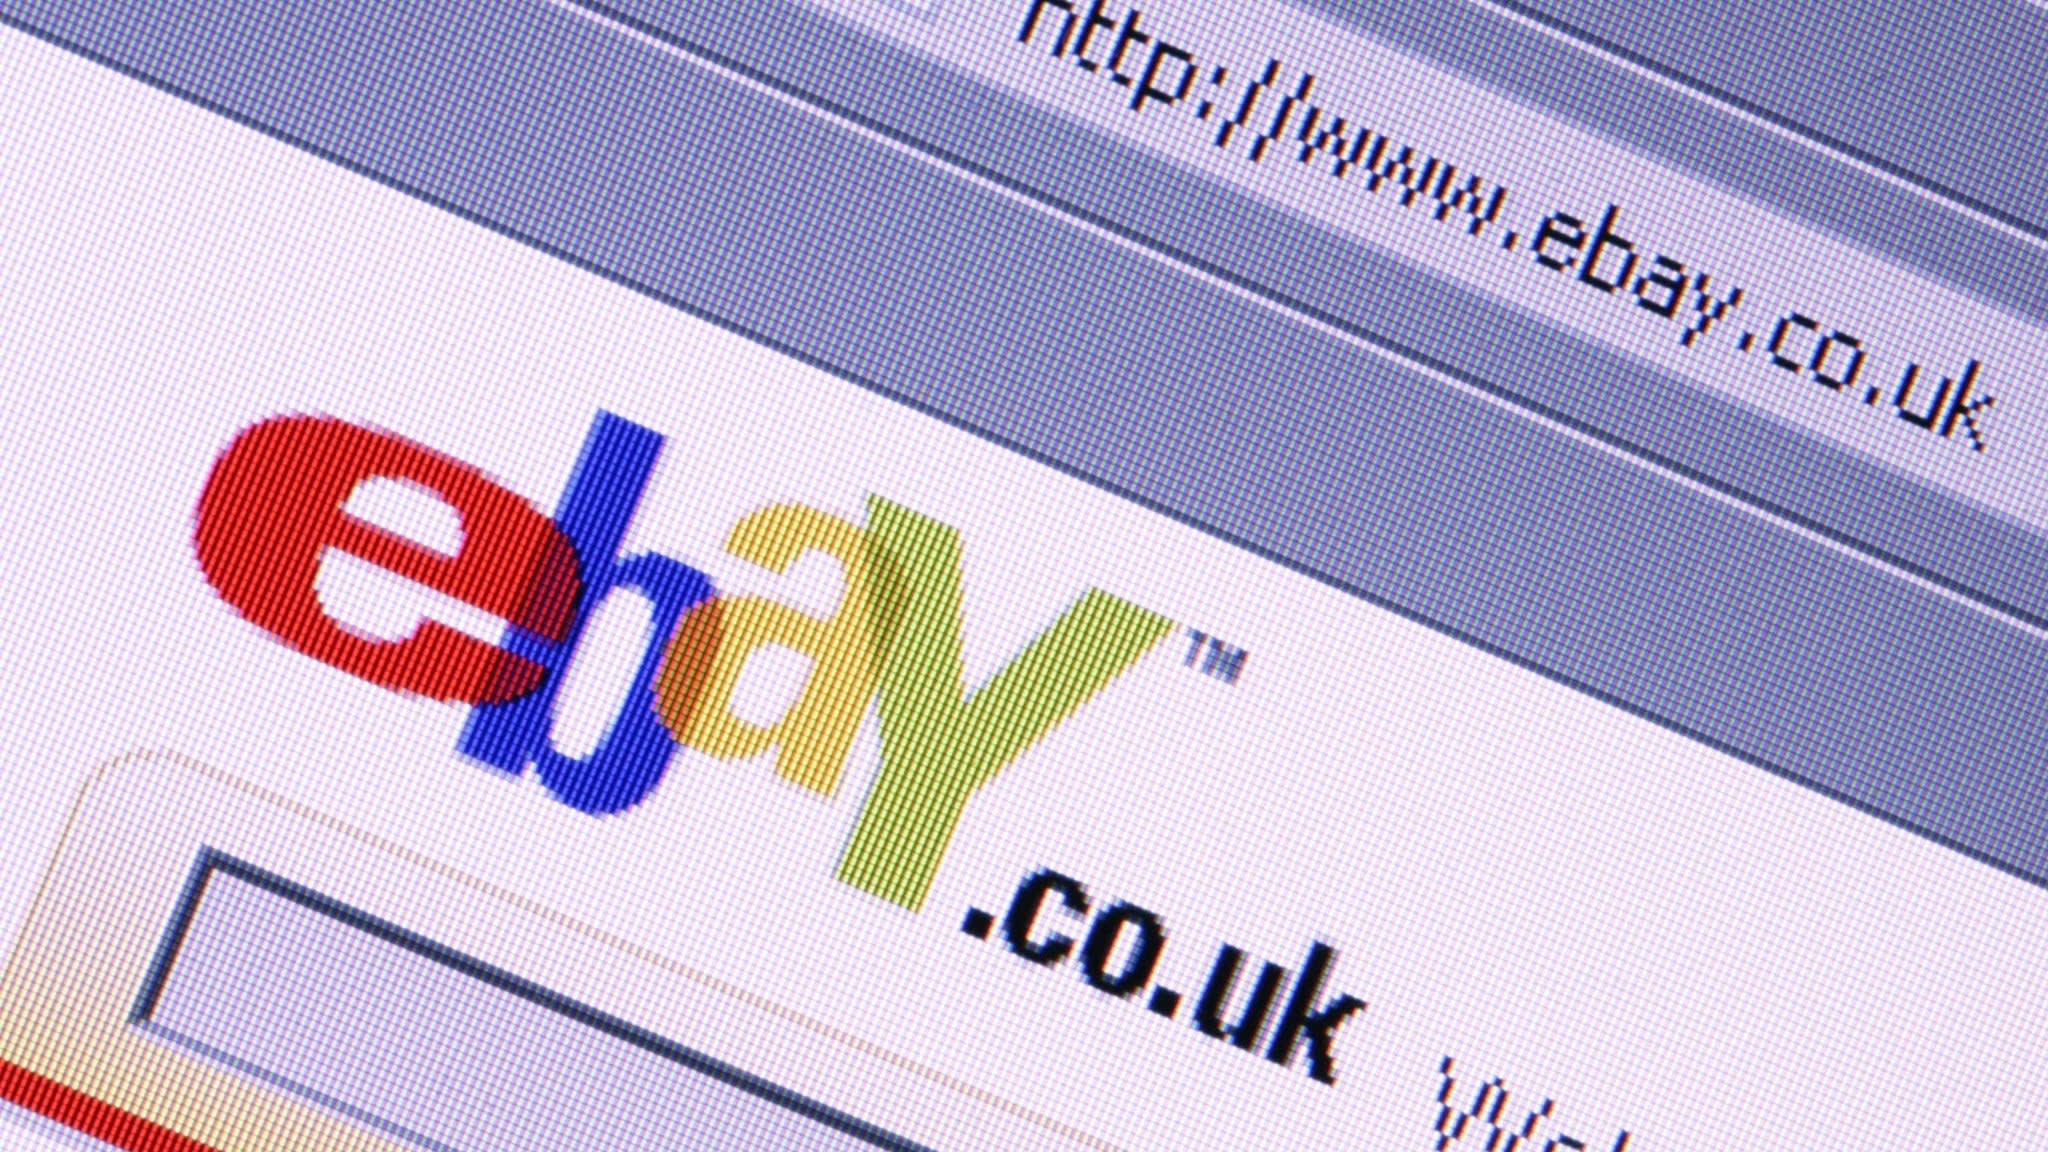 eBay accuses Amazon of 'unlawful' attempts to poach sellers